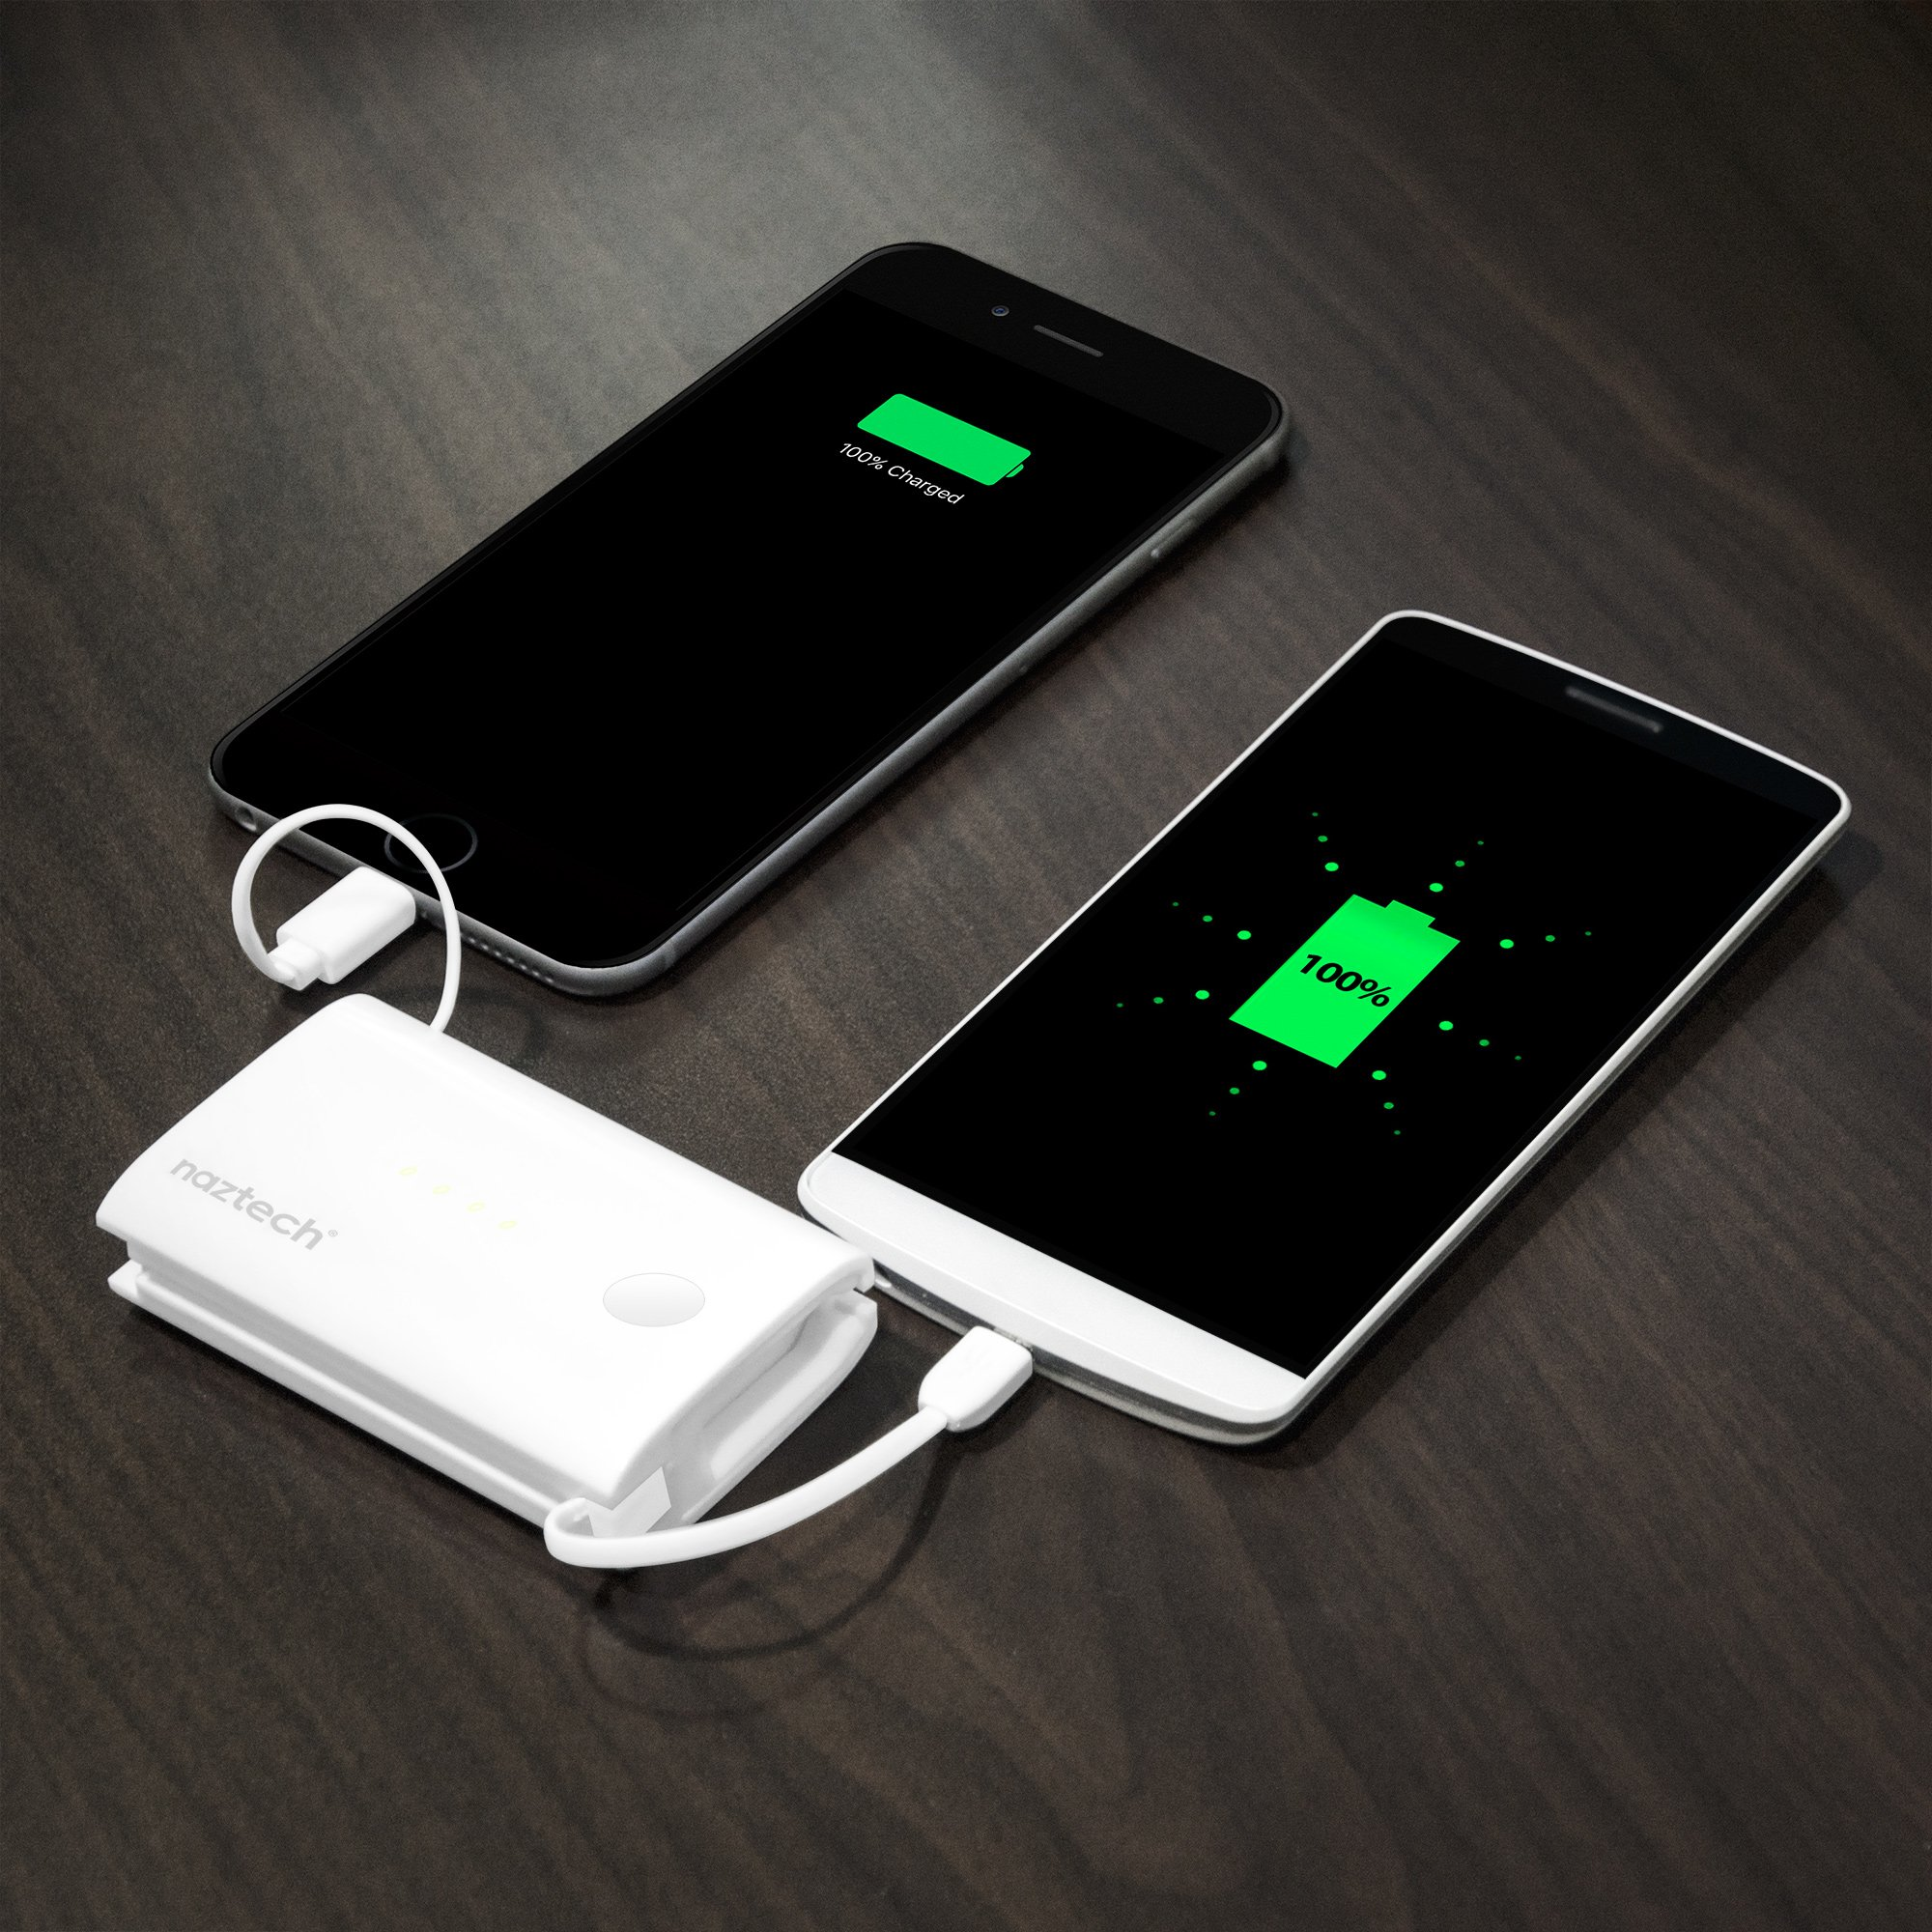 Naztech PB5000i Pocket Power Bank 5000mAh Capacity Portable Charger, 2 Built-in Cables: Apple MFi Lightning AND Micro USB, Universal Compatibility, Compact Battery, Simultaneously Charge 2 Devices by Naztech (Image #5)